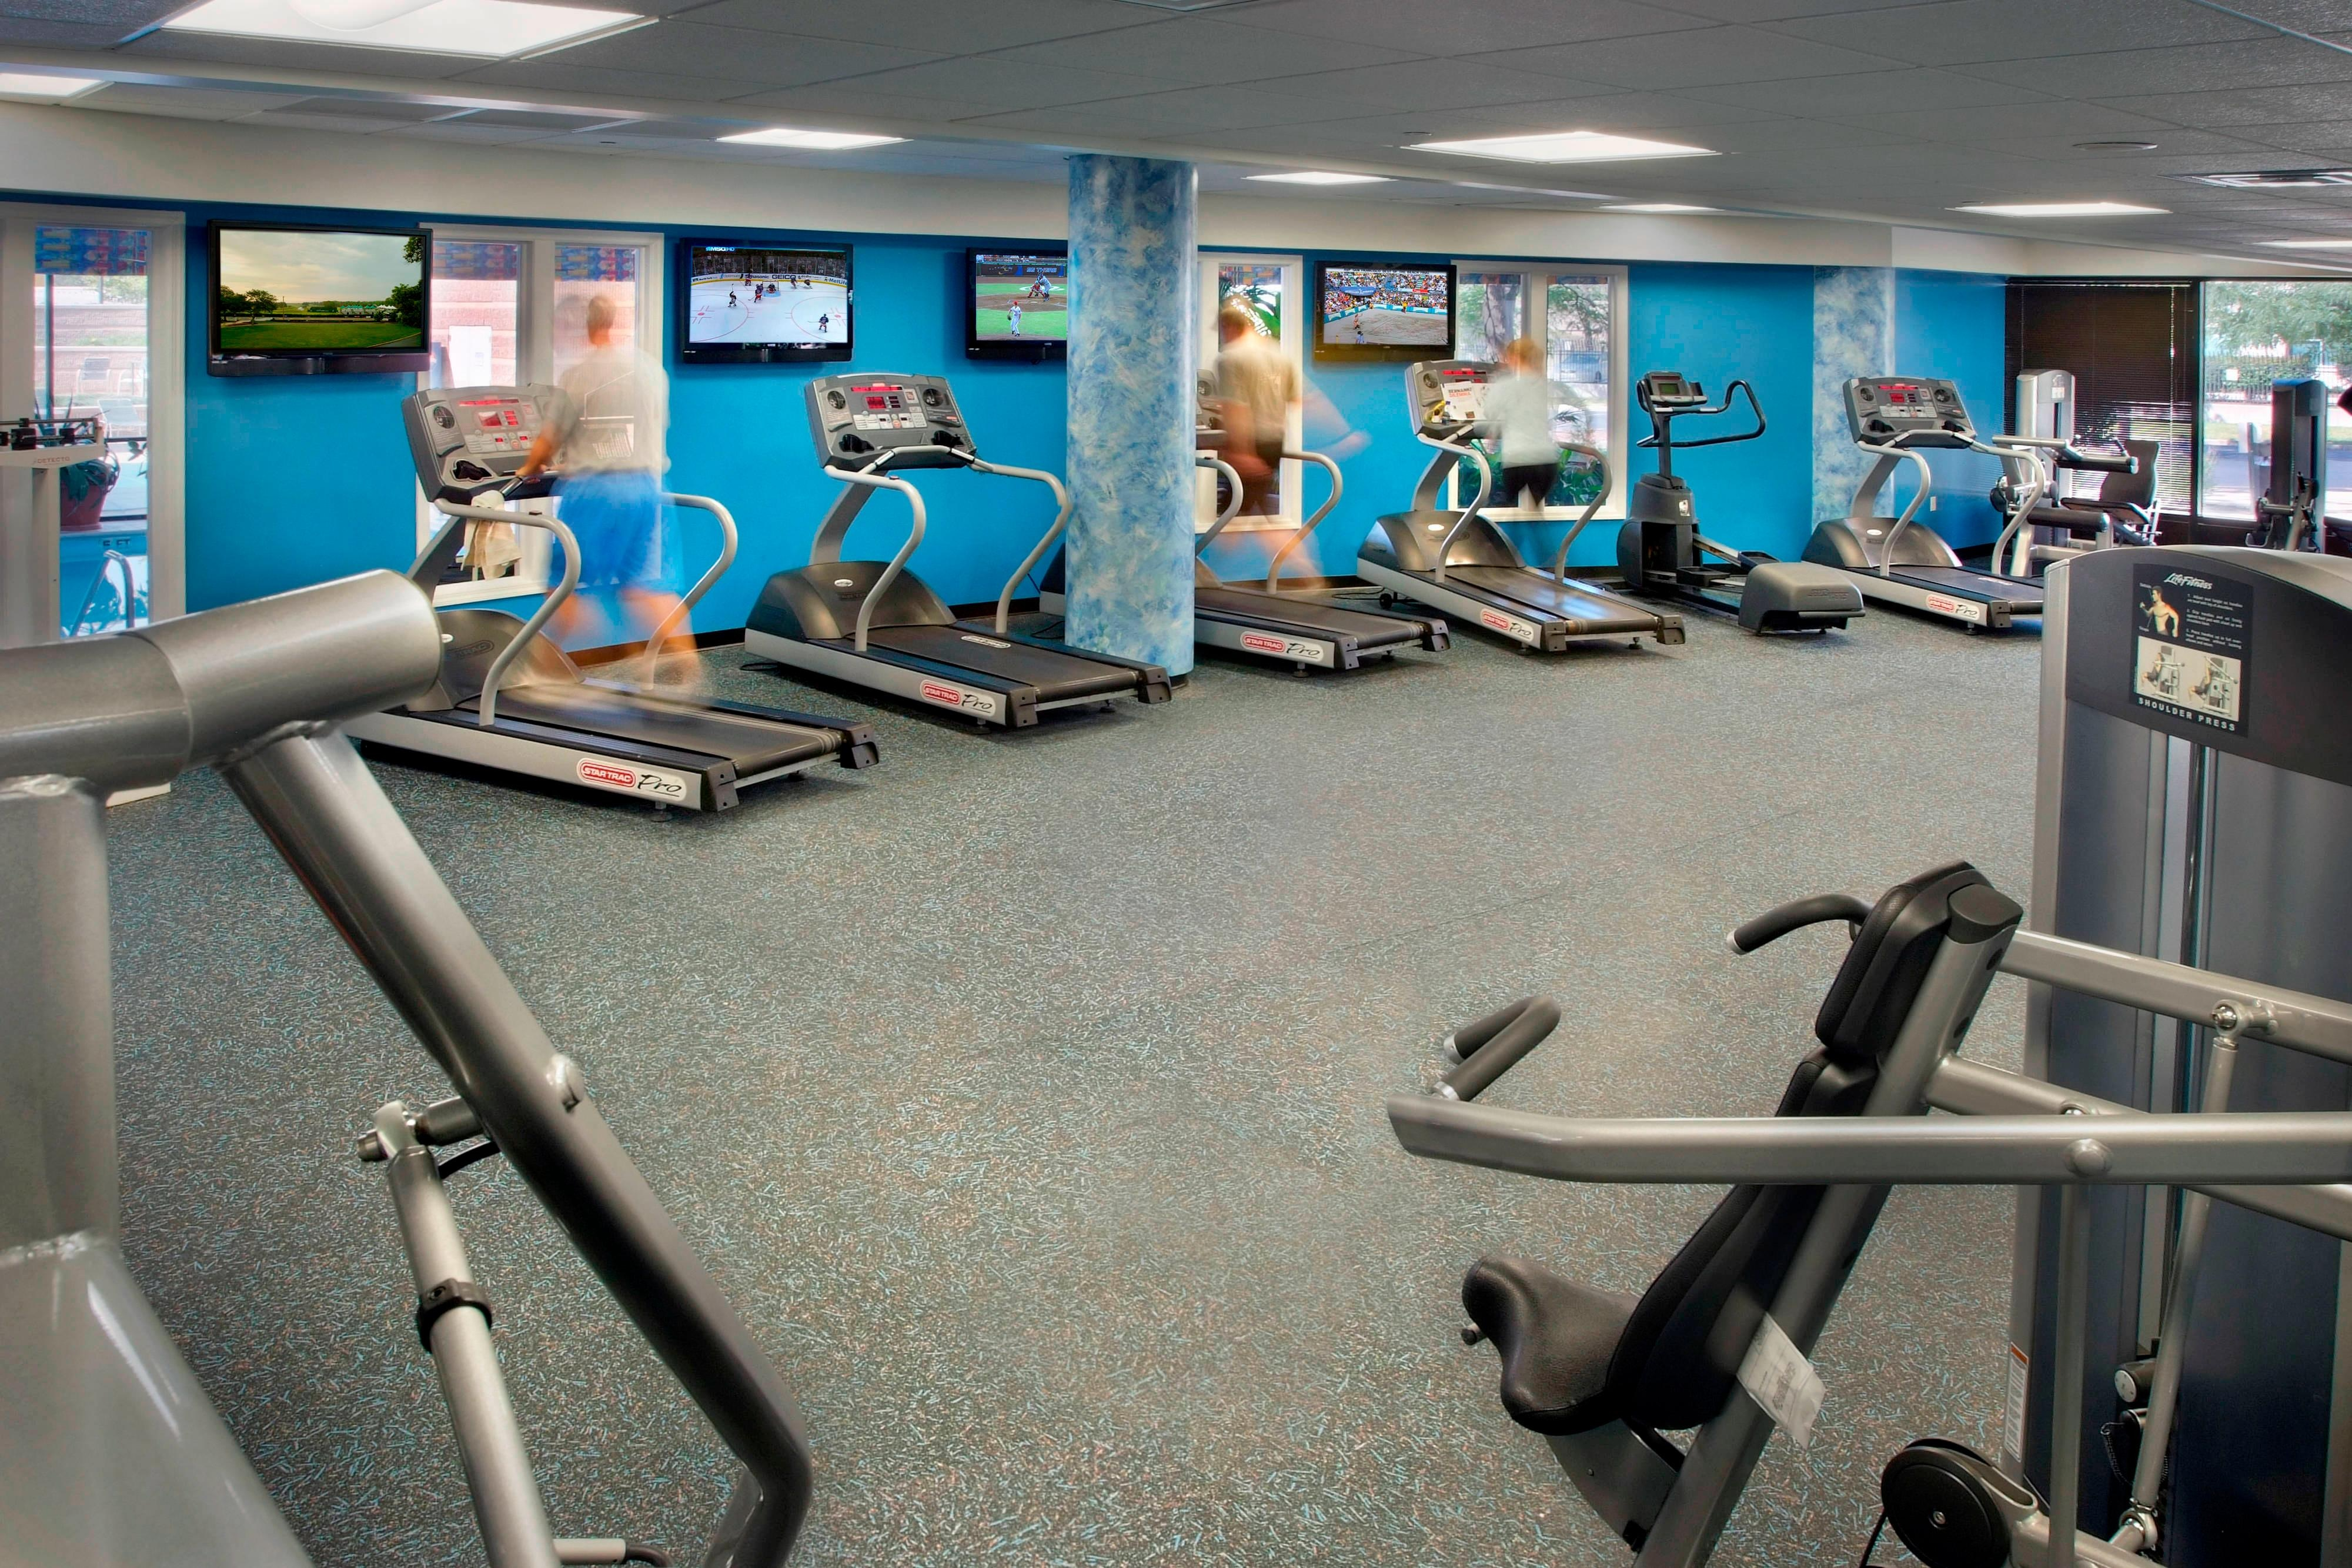 Fitness center in EWR hotel